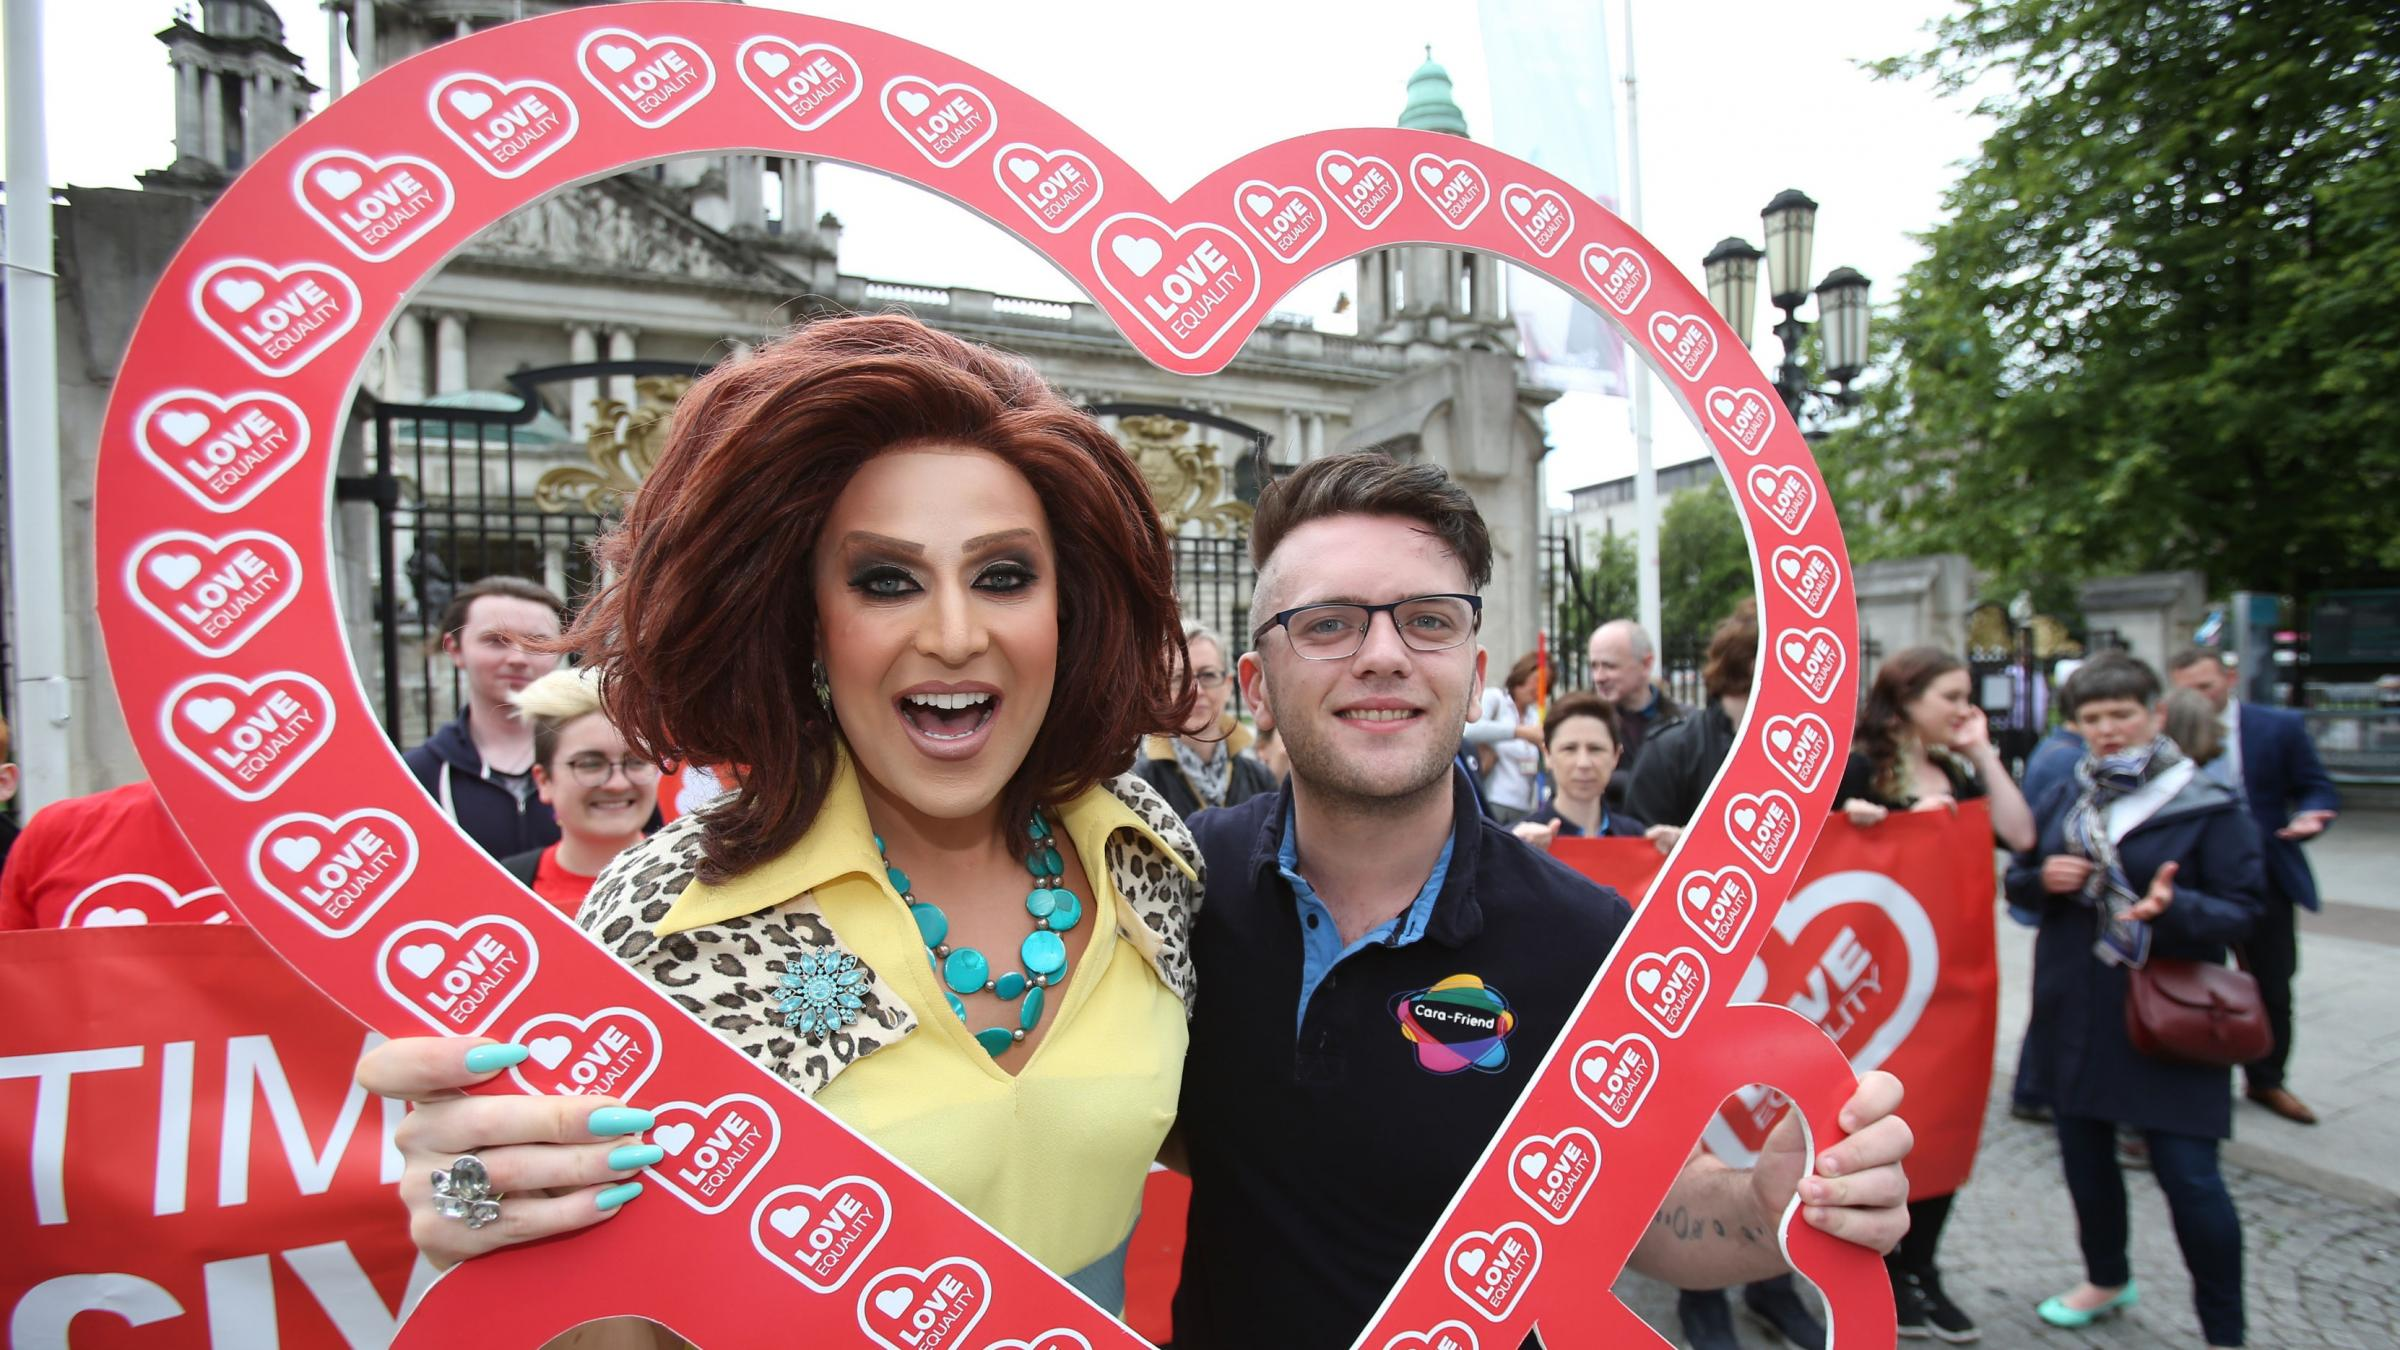 LGBT activists call for thousands to join same-sex marriage march